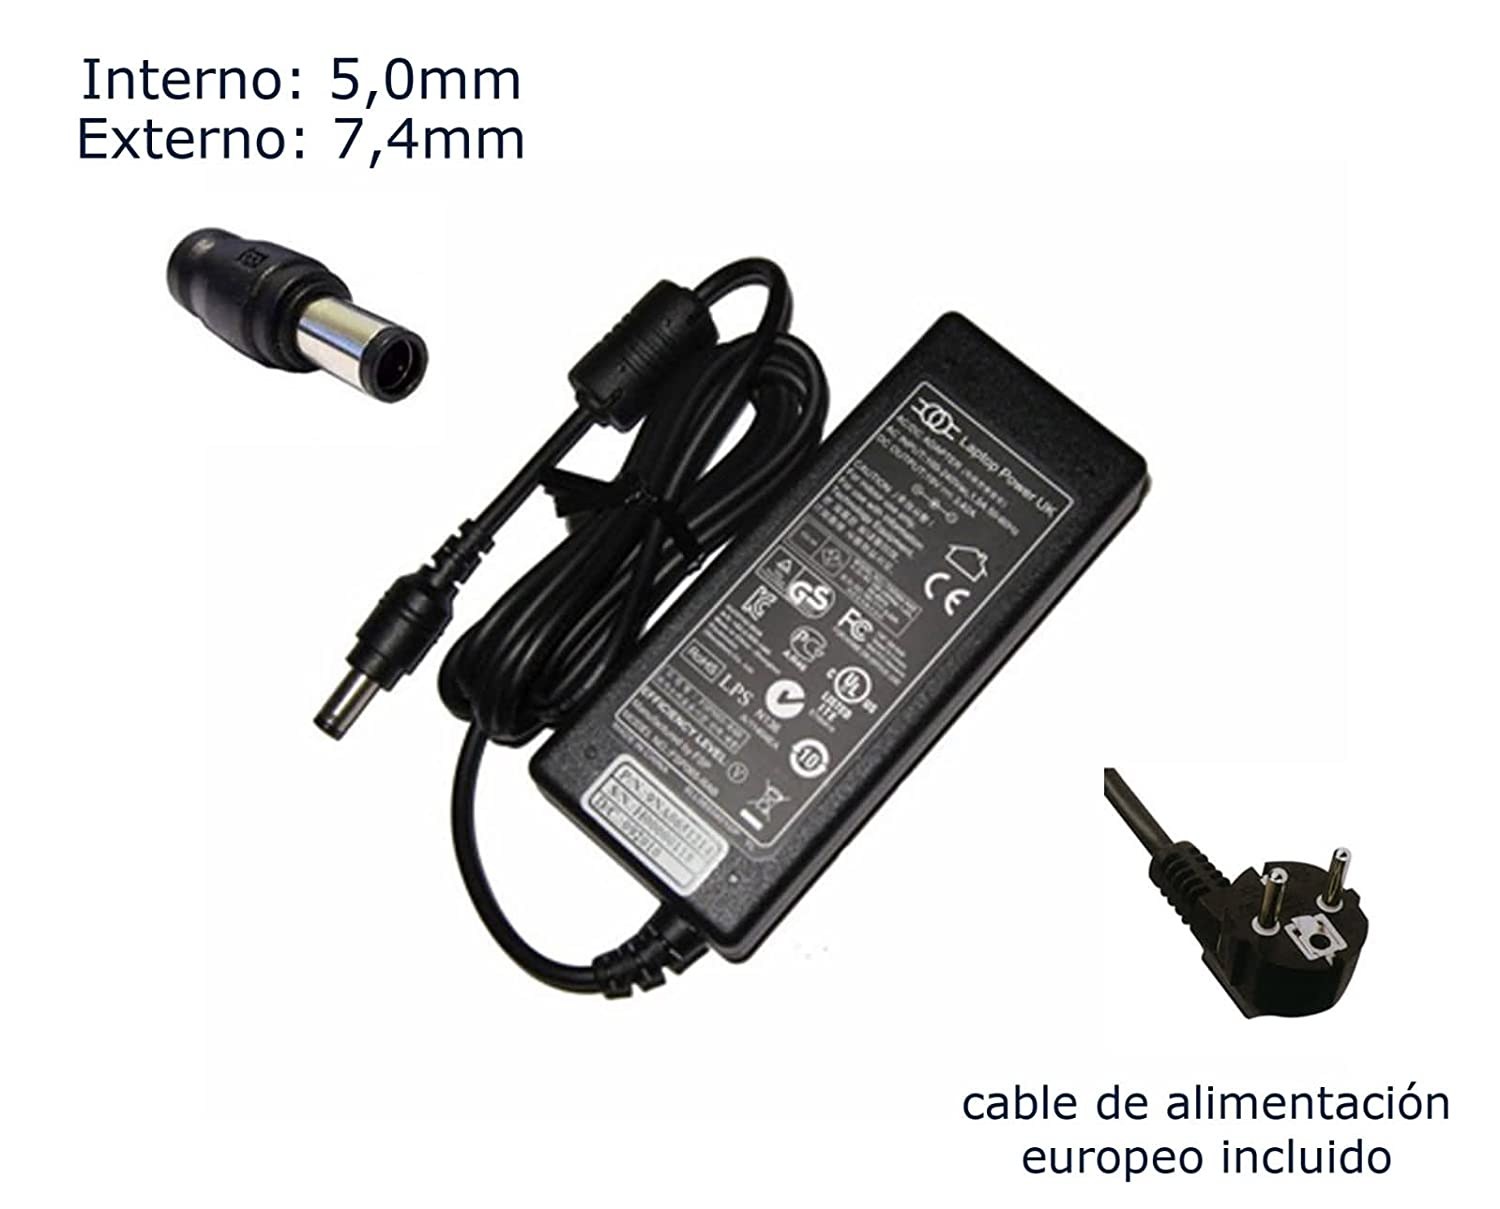 Cargador de portátil HP Elitebook 8760w 8770w 8730w 8740w (All Models) adaptador, Ordenador Portatil transformador - Marca